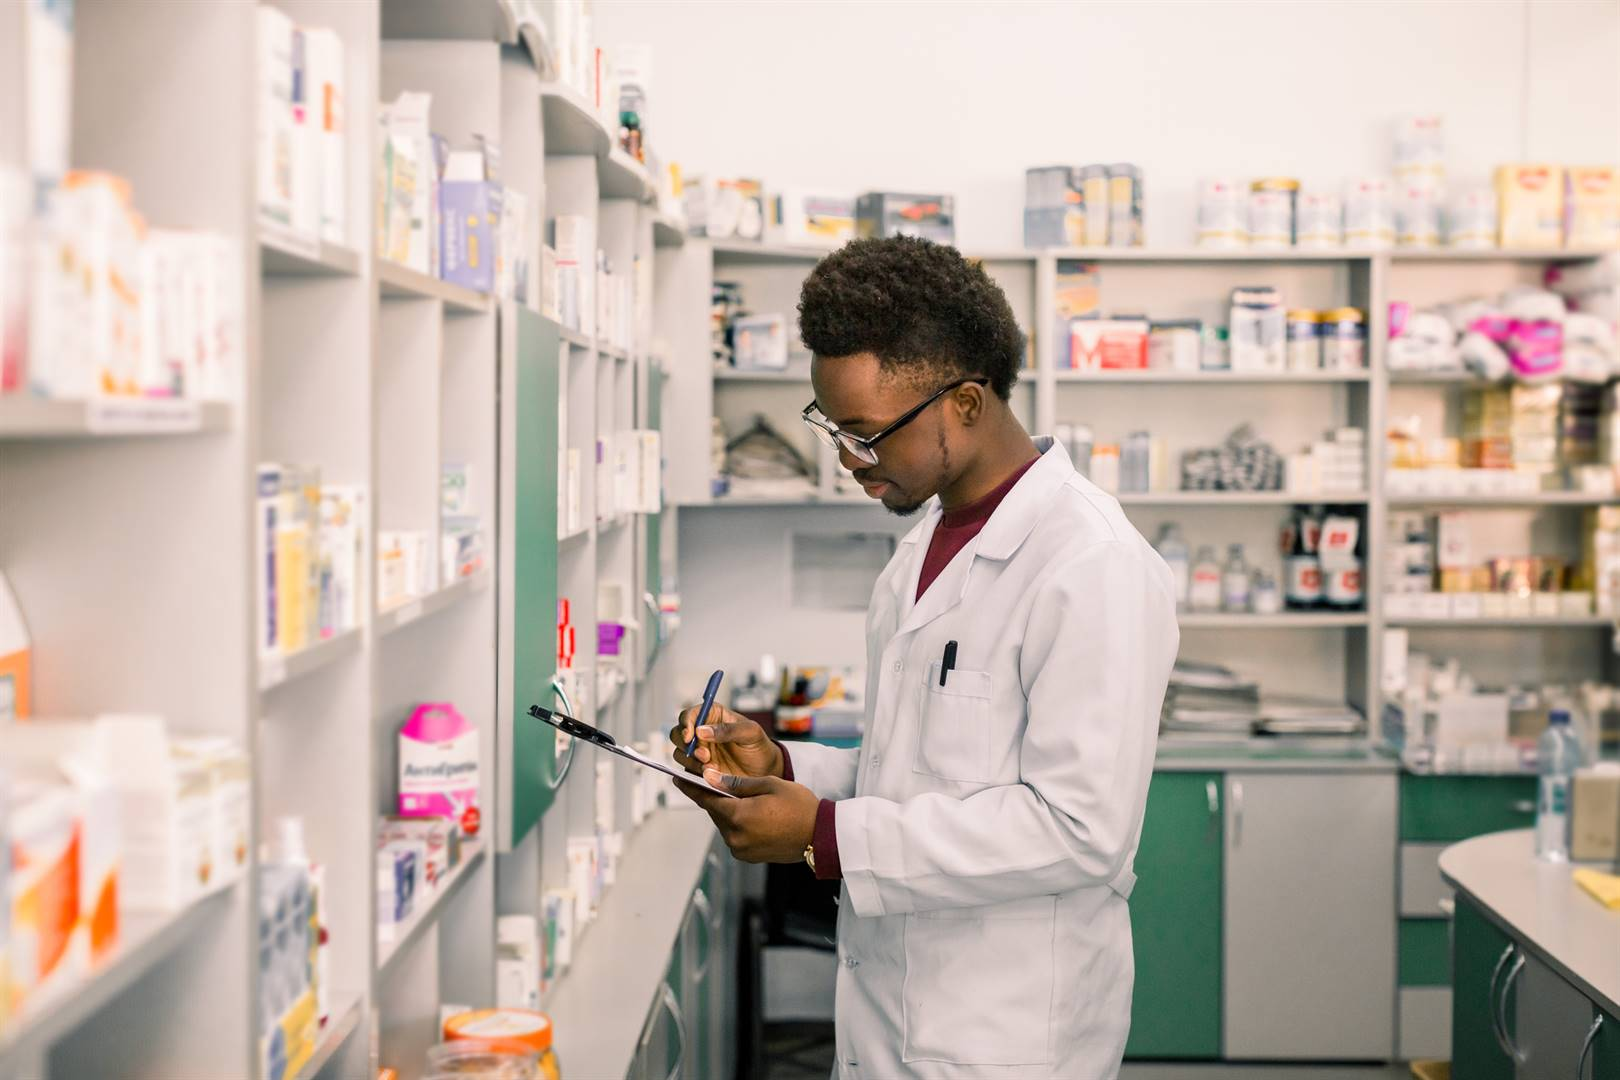 """The role of pharmacist is vital given estimates of the World Health Organization that """"half of all medicines are prescribed, dispensed or sold inappropriately"""". Picture: Supplied"""